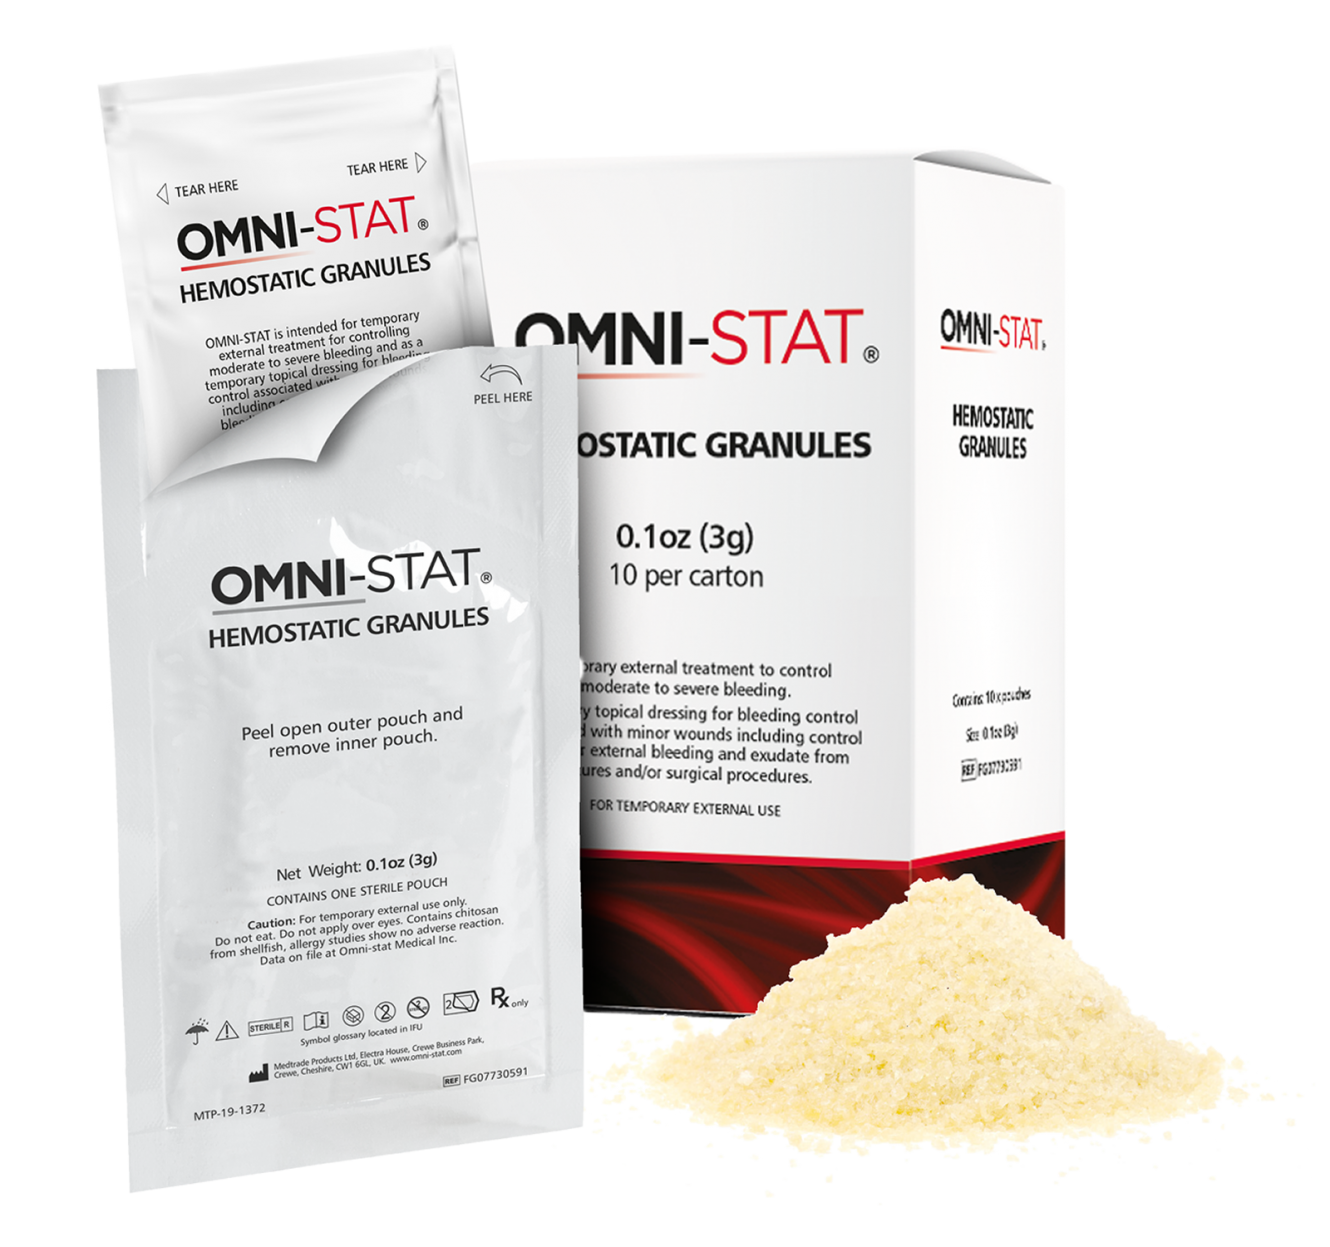 Introducing the NEW OMNI-STAT® 3g Package Design